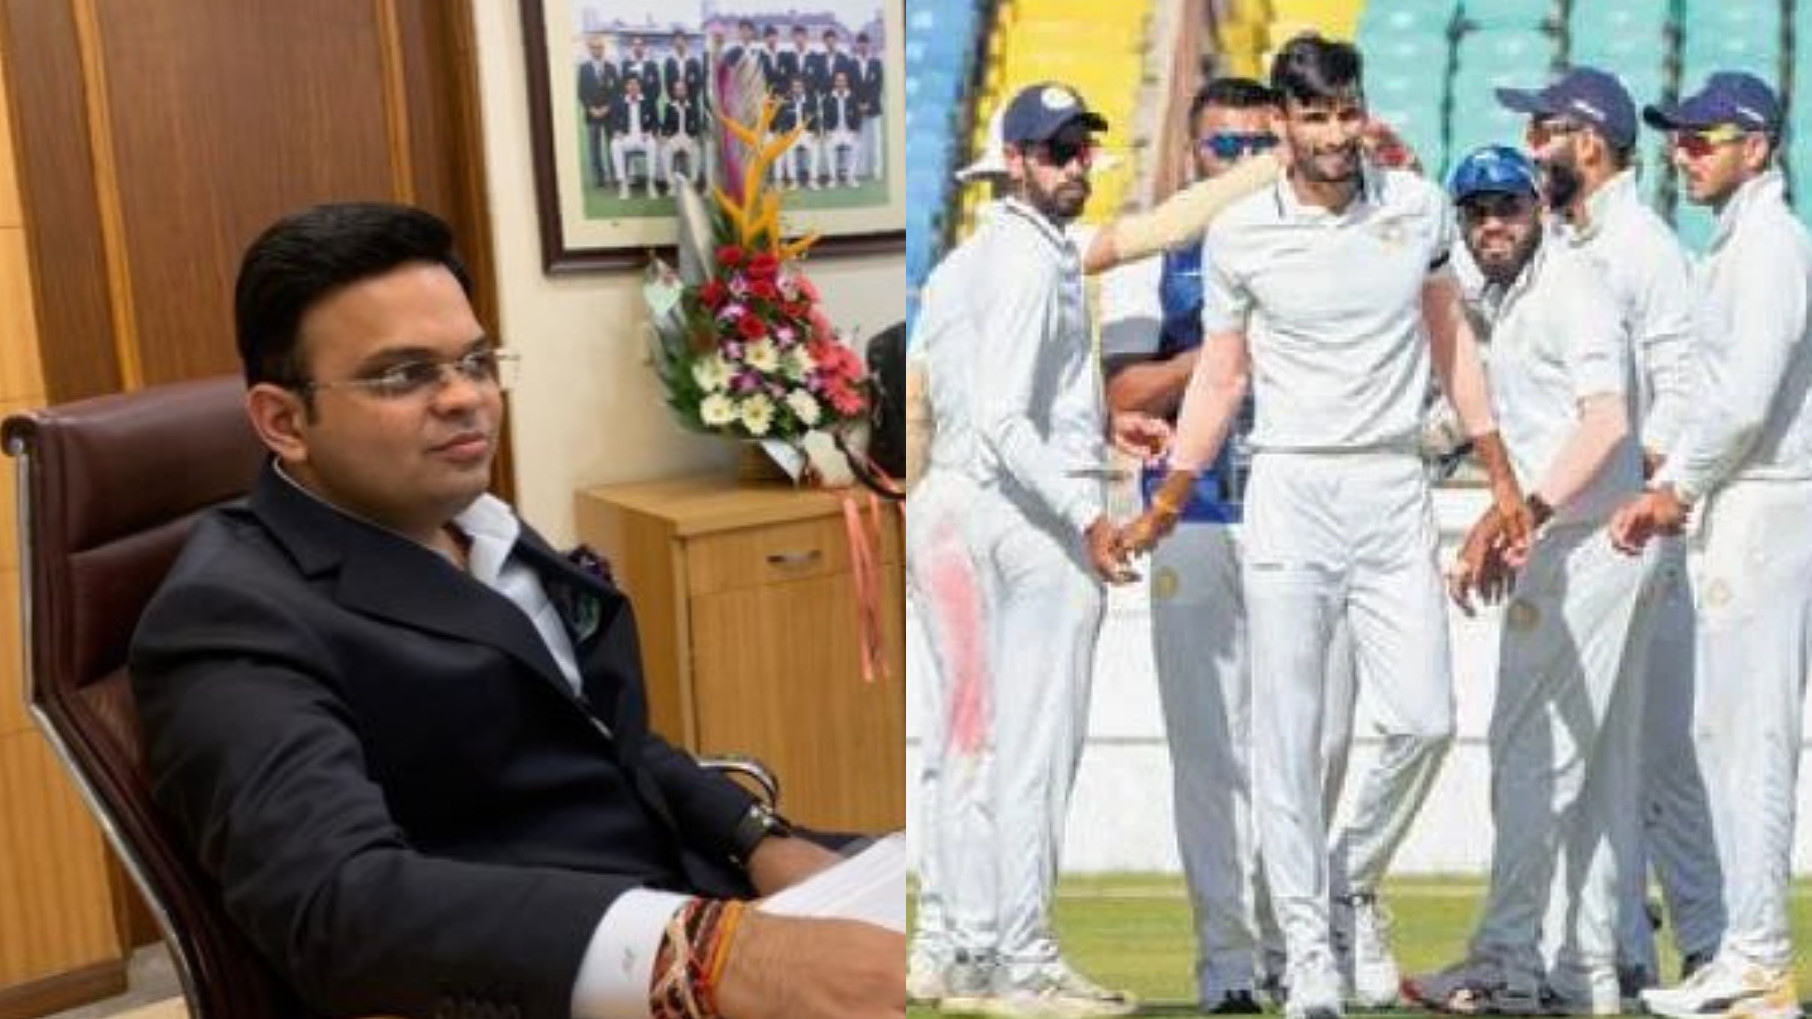 BCCI announces hike in match fees for domestic cricketers hit by COVID postponements